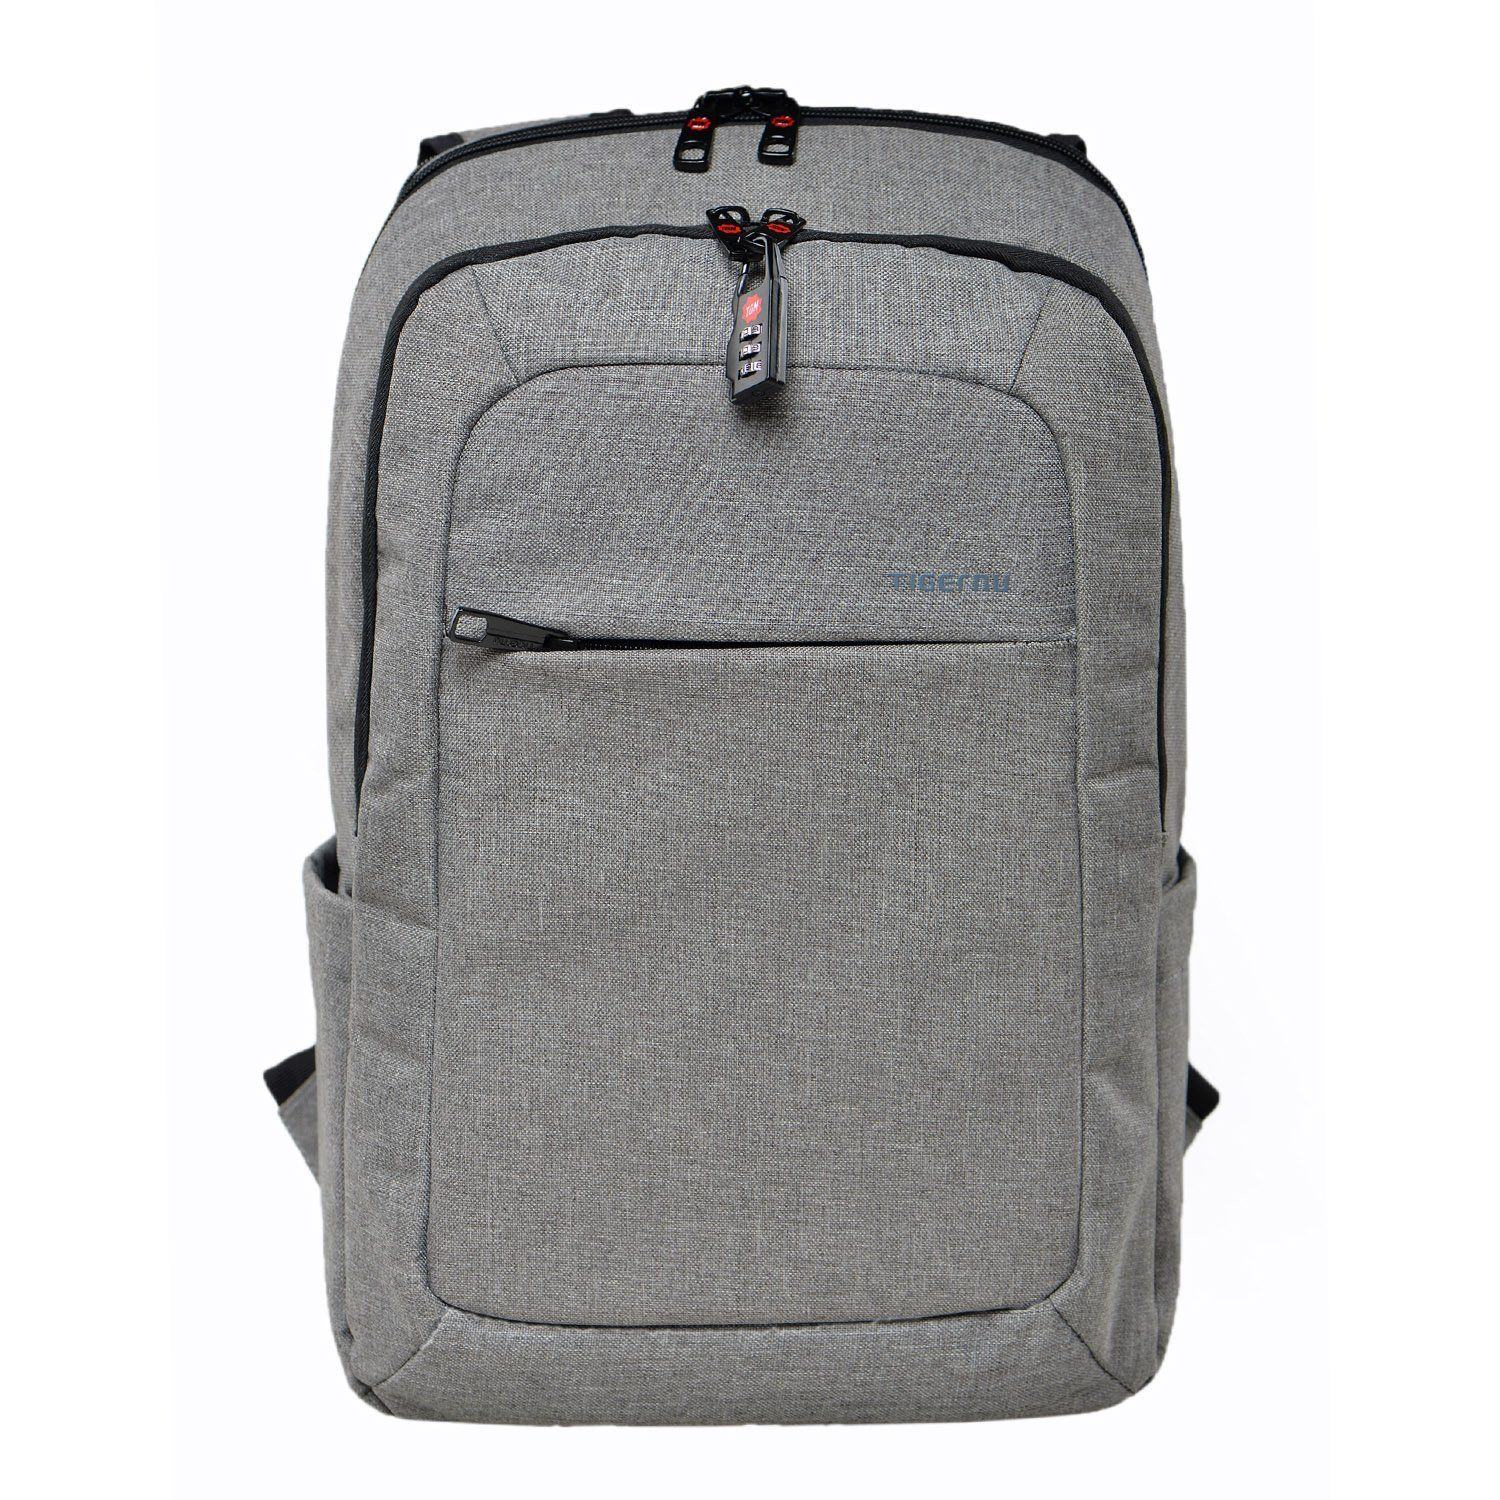 789226c440a 14 laptop bags that are stylish   professional - Business Insider